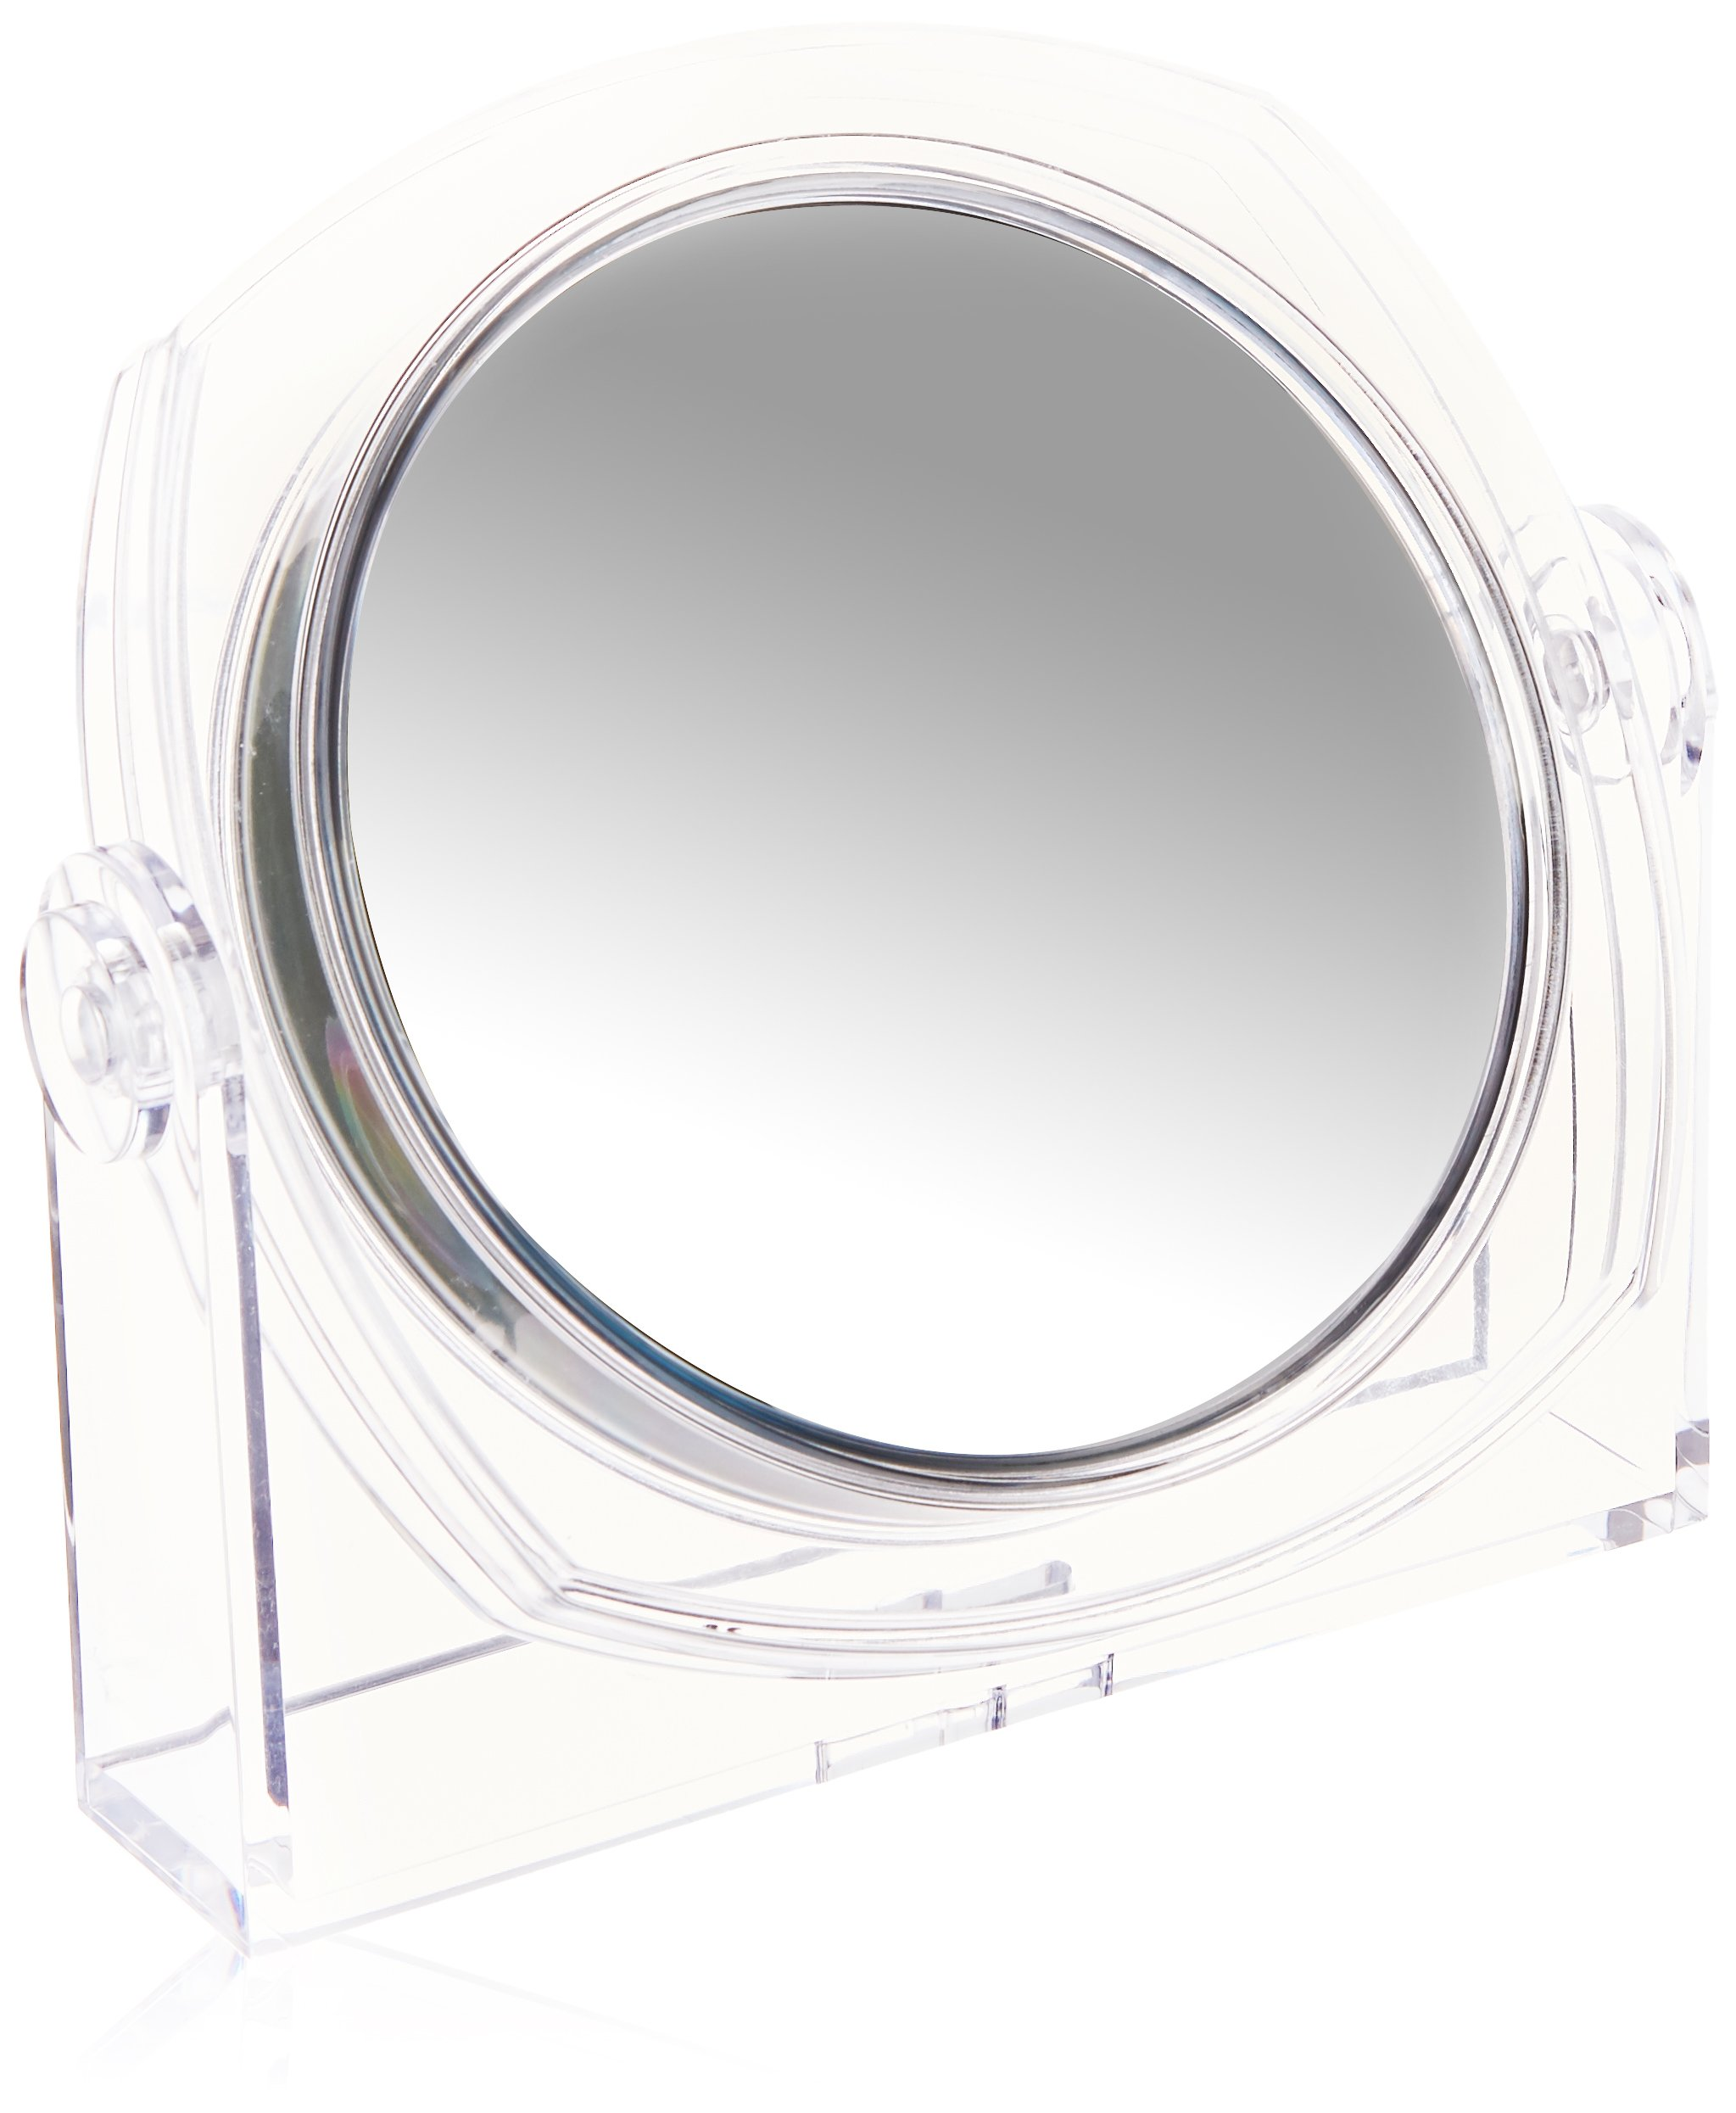 Acrylic transparent table-top mirror, light and portable. Double-Sided 10X/1X Magnification and Normal View. 6.5 inches diameter and 7 inches height. Soft Touch Finish